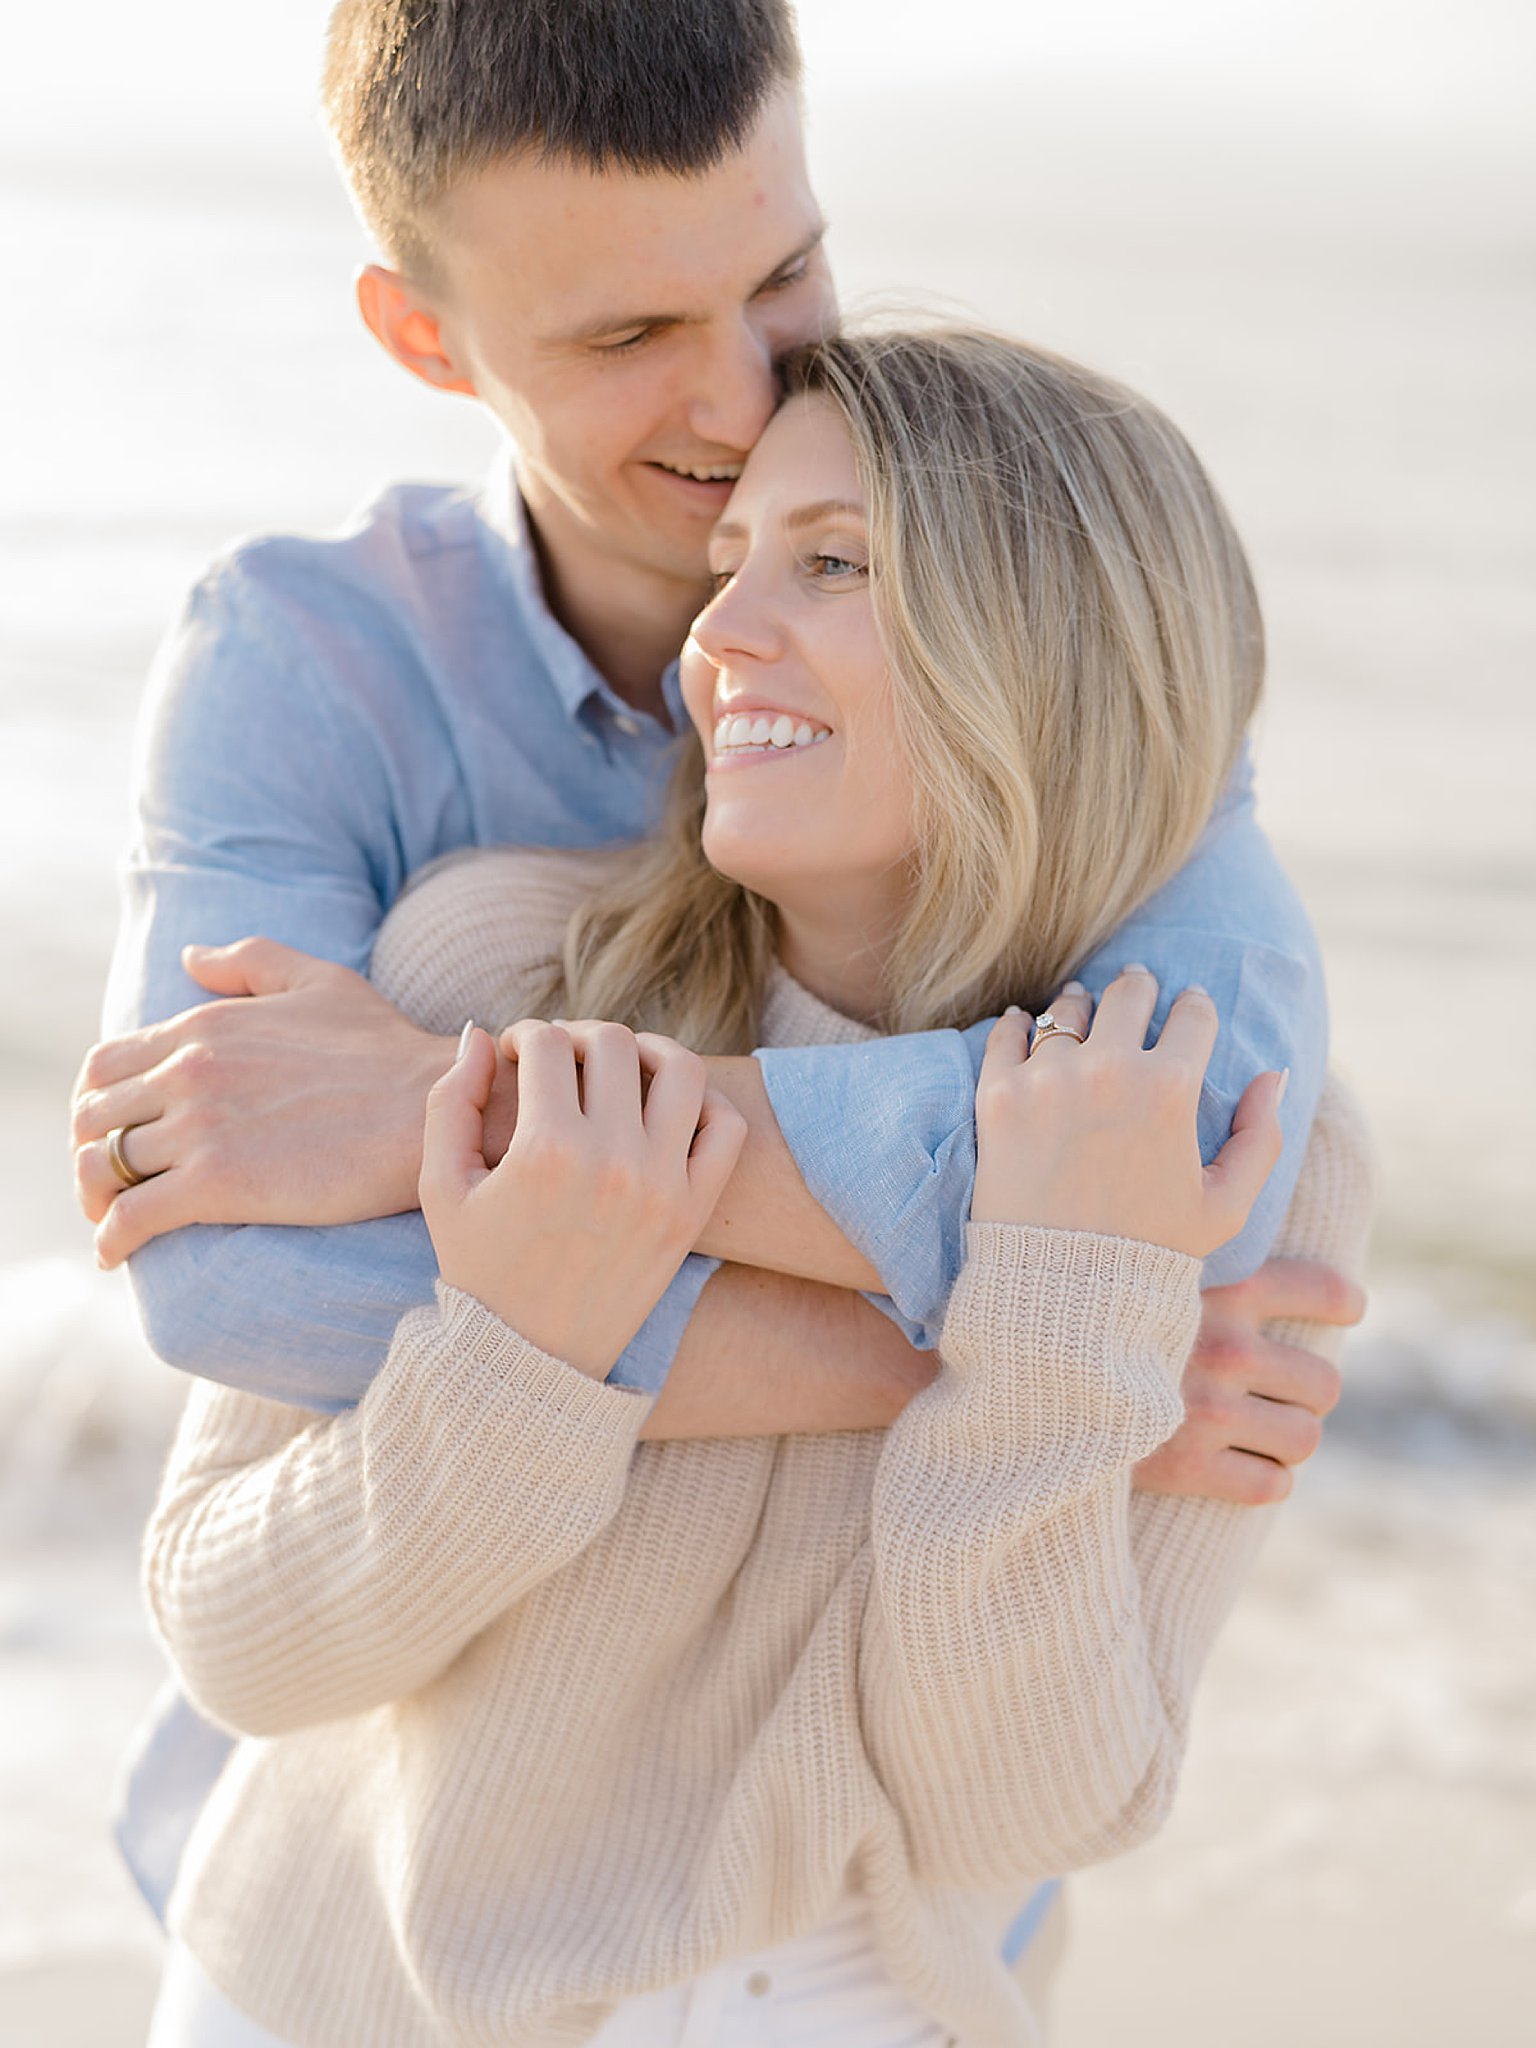 Ocean City New Jersey Engagement Session Photography by Magdalena Studios KateBrad 0049 1